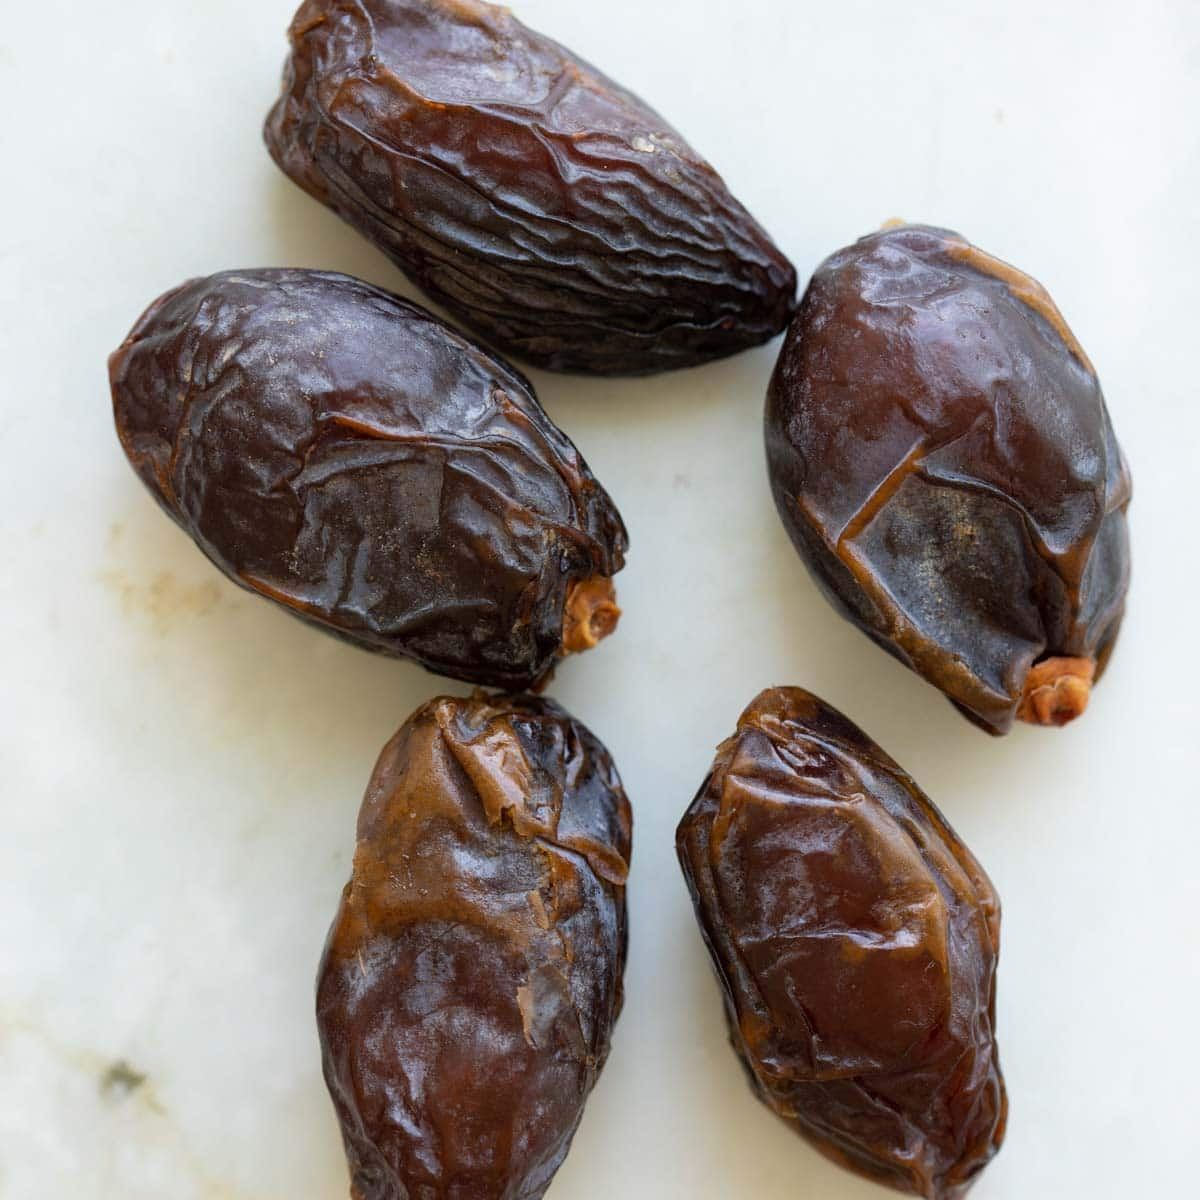 medjool dates close up on a table